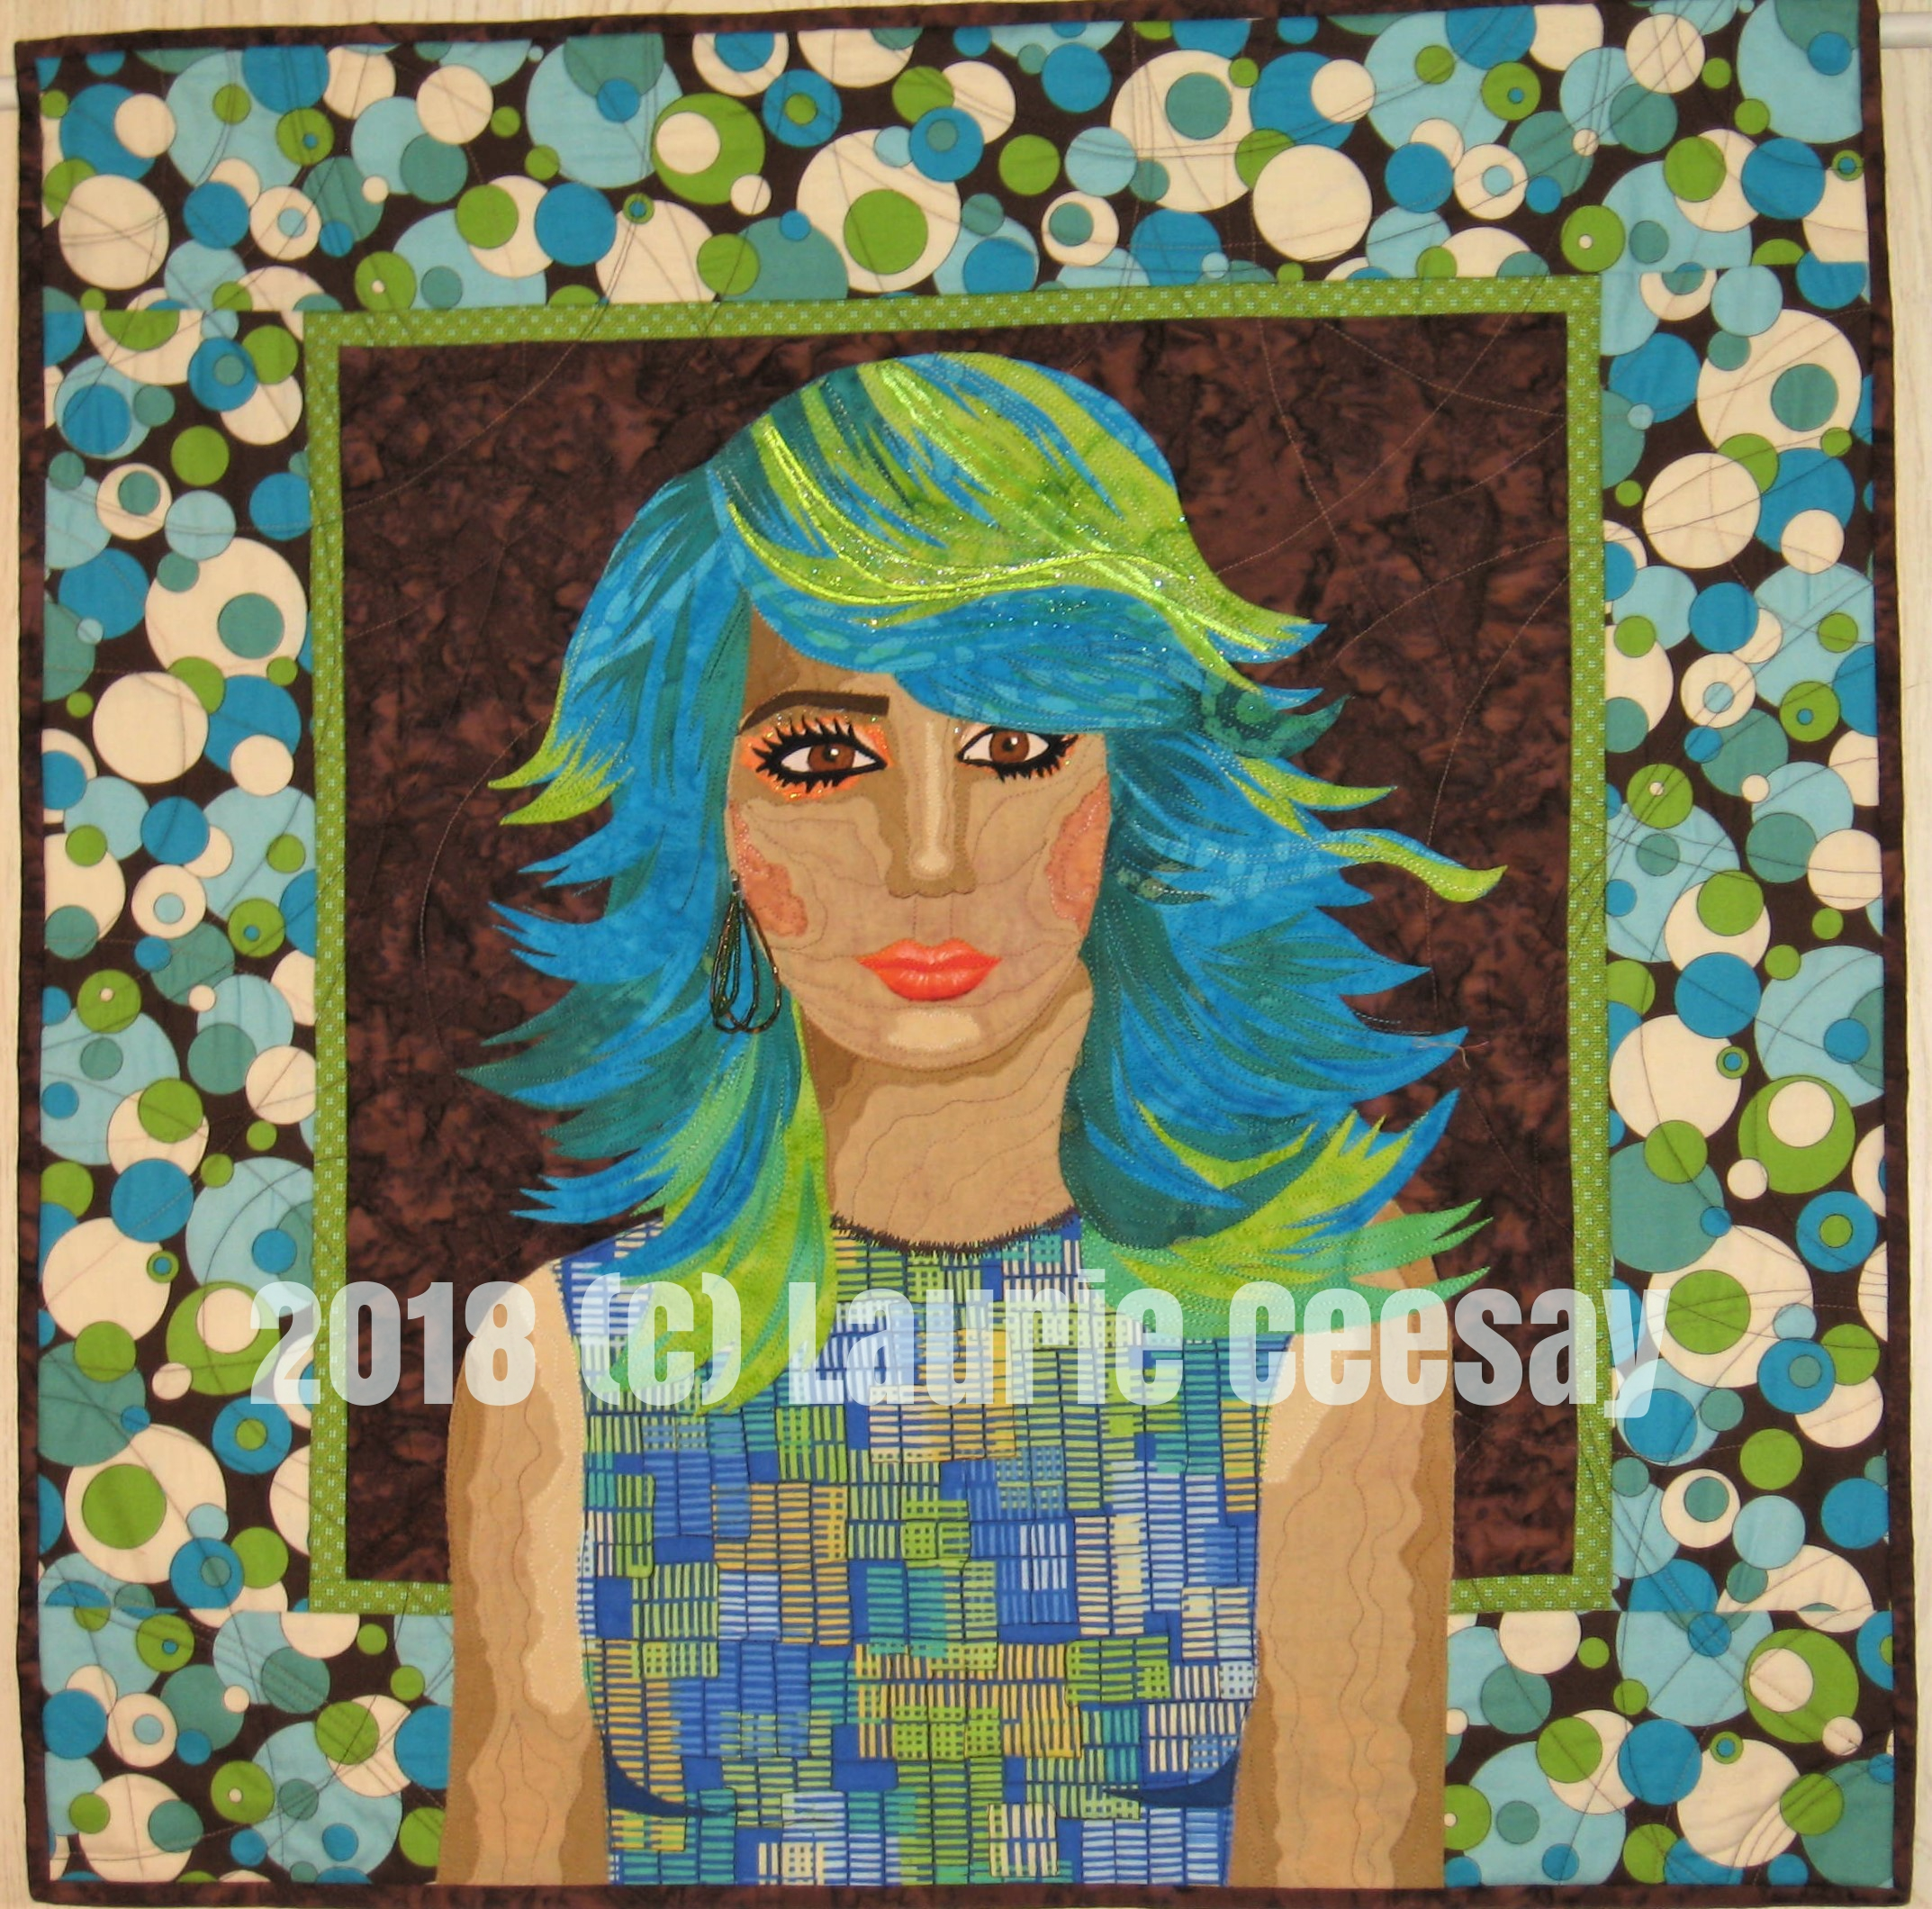 "In February I was invited by Susan Brubaker Knapp, the host of Quilting Arts TV on PBS, to participate as a guest artist. I taped 3 segments in April on Pop Art Portraits, Dollar Store Embellishments and Realistic Hair Techniques in Portrait Quilts. This quilt was made for the purpose of being a working sample for the Realistic Hair segment.   As a hairdresser I am exposed to a huge amount of hair color options and bright fake colors are popular. I had purchased the outside border fabric a while back and chose to use it in this quilt thus creating the analogous color scheme. Mermaid hair color (kelly green, lime green, turquoise and possibly blue) was my inspiration and then featuring the 1970s Farrah Faucett style haircut with the strong full side swept bangs and side layers. I am not a huge fan of brown in my work but it seemed to fit as the background.  I made the majority of the quilt in March then sewing on the TV show's sewing machine sponsor's machine, a fancy Bernina, right out of the box to do the demo. The sewing machine rep, Jeanne Delpit from FL, sets up the machine with the selected thread, foot and stitch length. She physically moves it onto the set. My taping segment was for 8 min. so the actual sewing time on camera is minimal for all the prepping done!   I returned home and put the quilt on hold until I completed other deadline projects. I finished it this week! It is titled ""Farrah Wings!"" which is a hairdresser jokey name!"